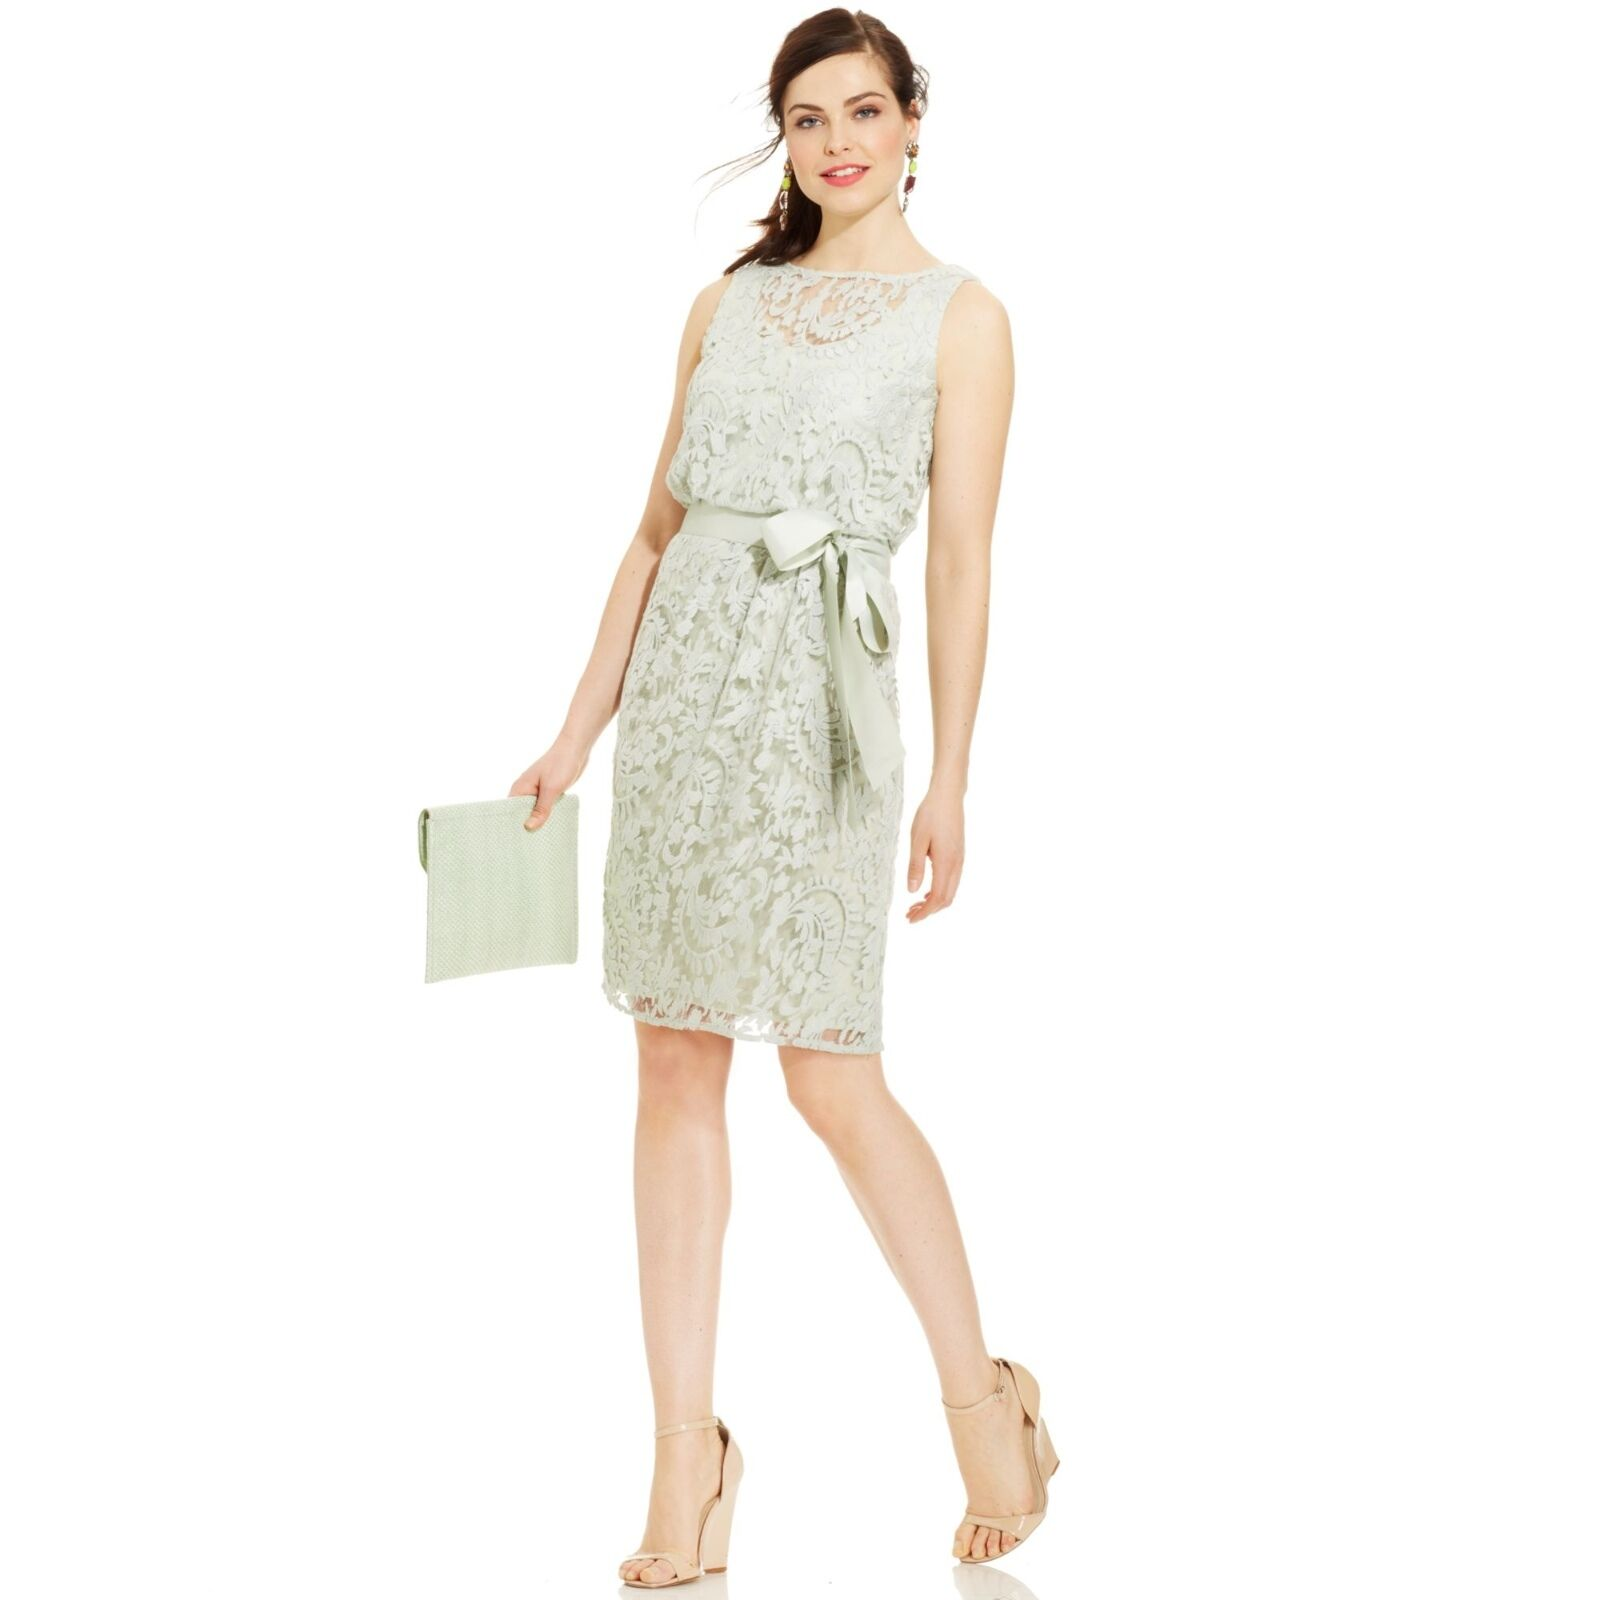 ADRIANNA PAPELL SLEEVELESS ILLUSIONS LACE BLOUSON BELTED DRESS sz 10